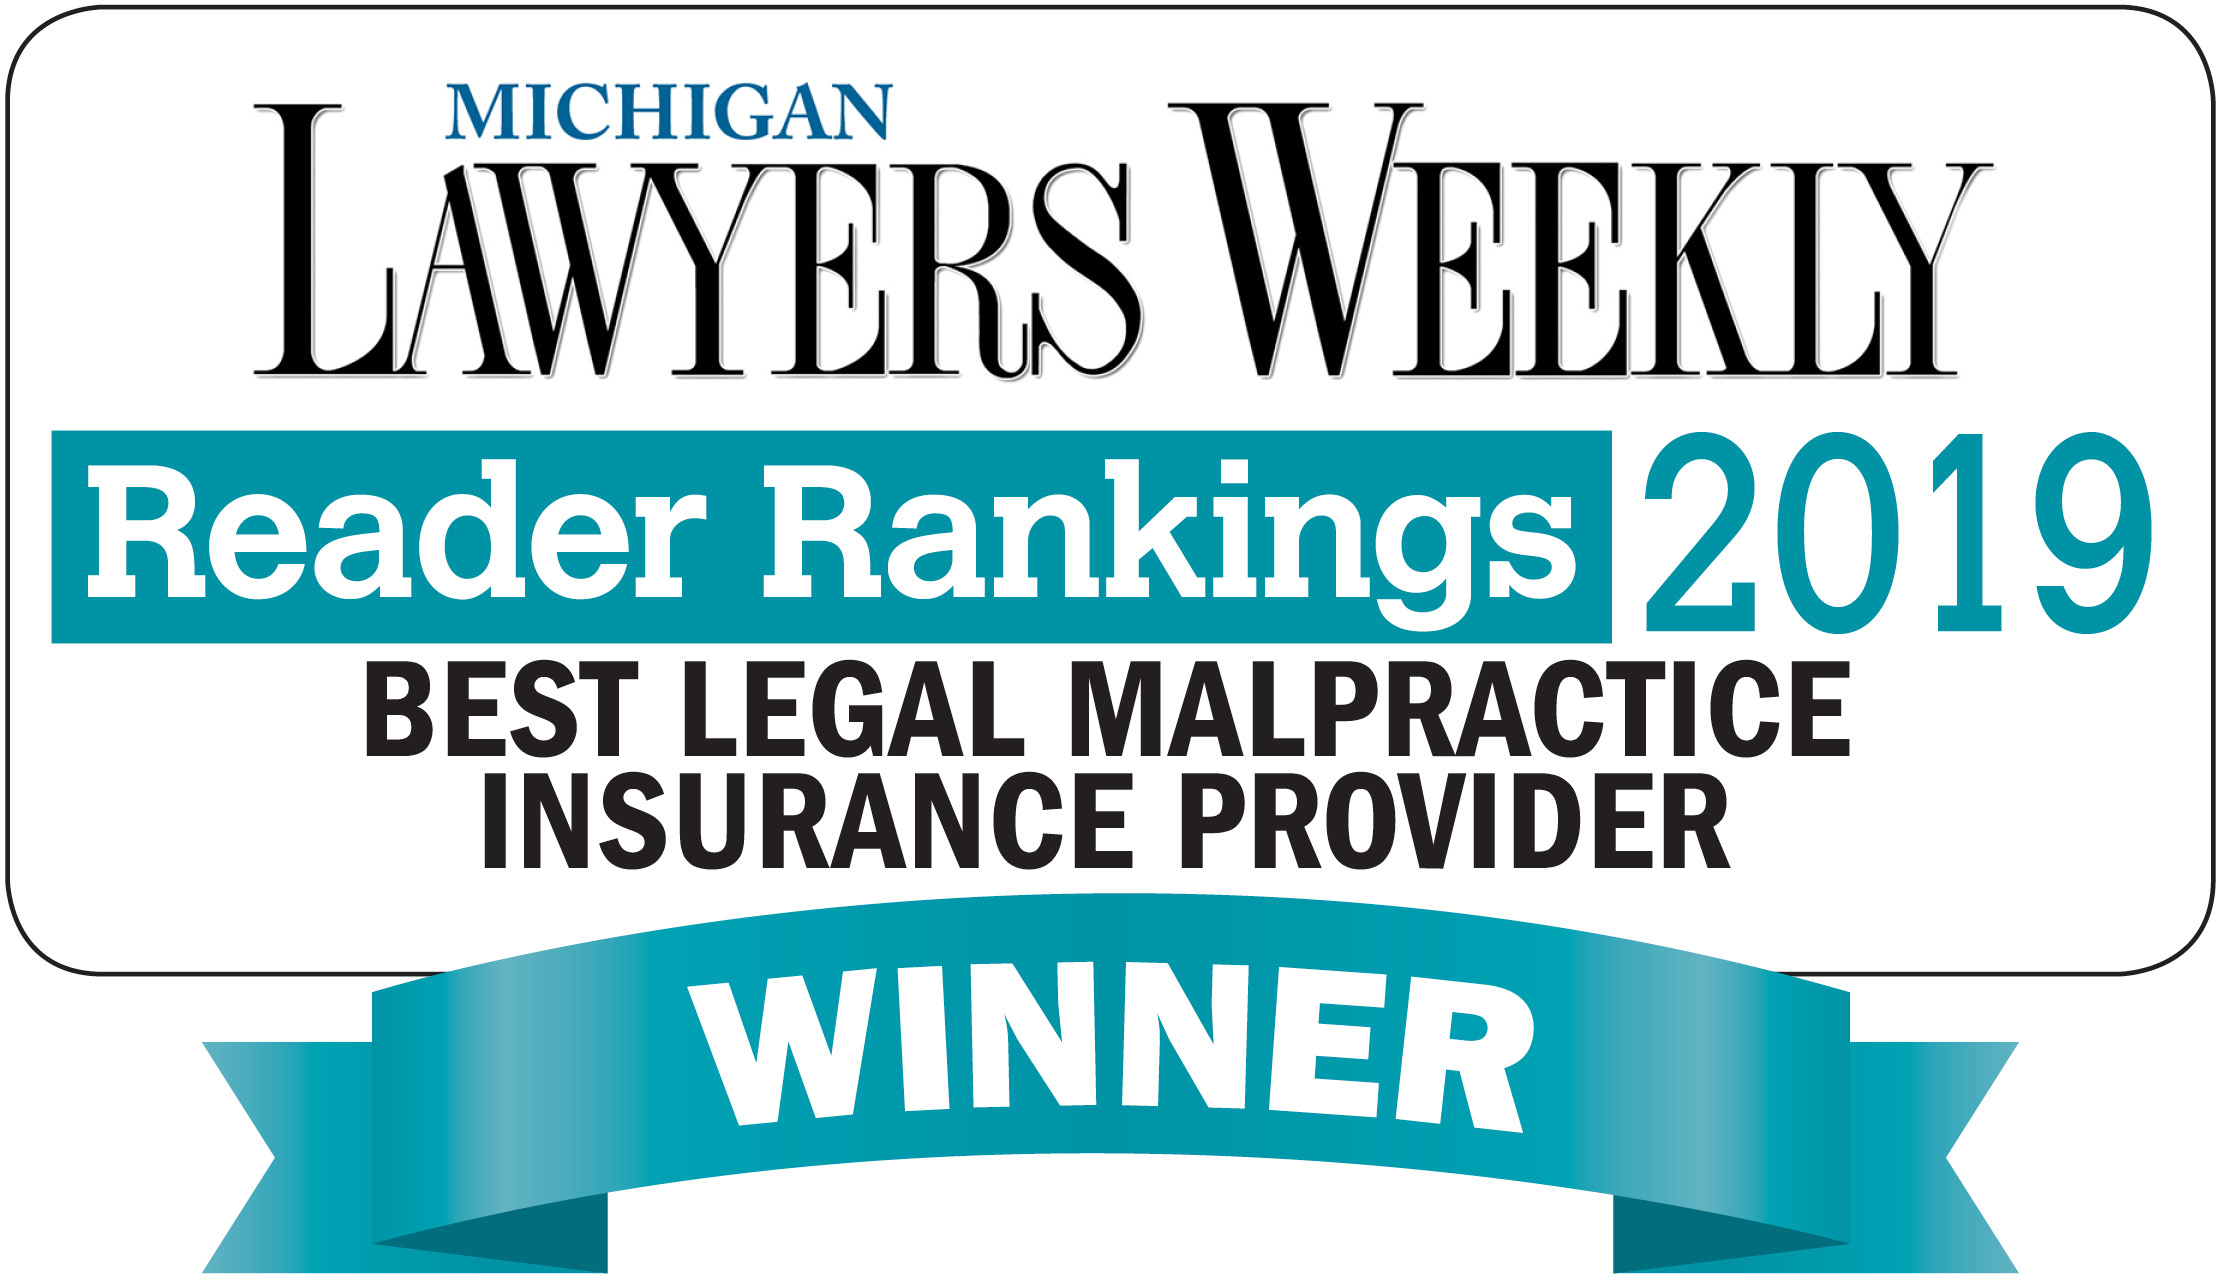 Legal Malpractice Award